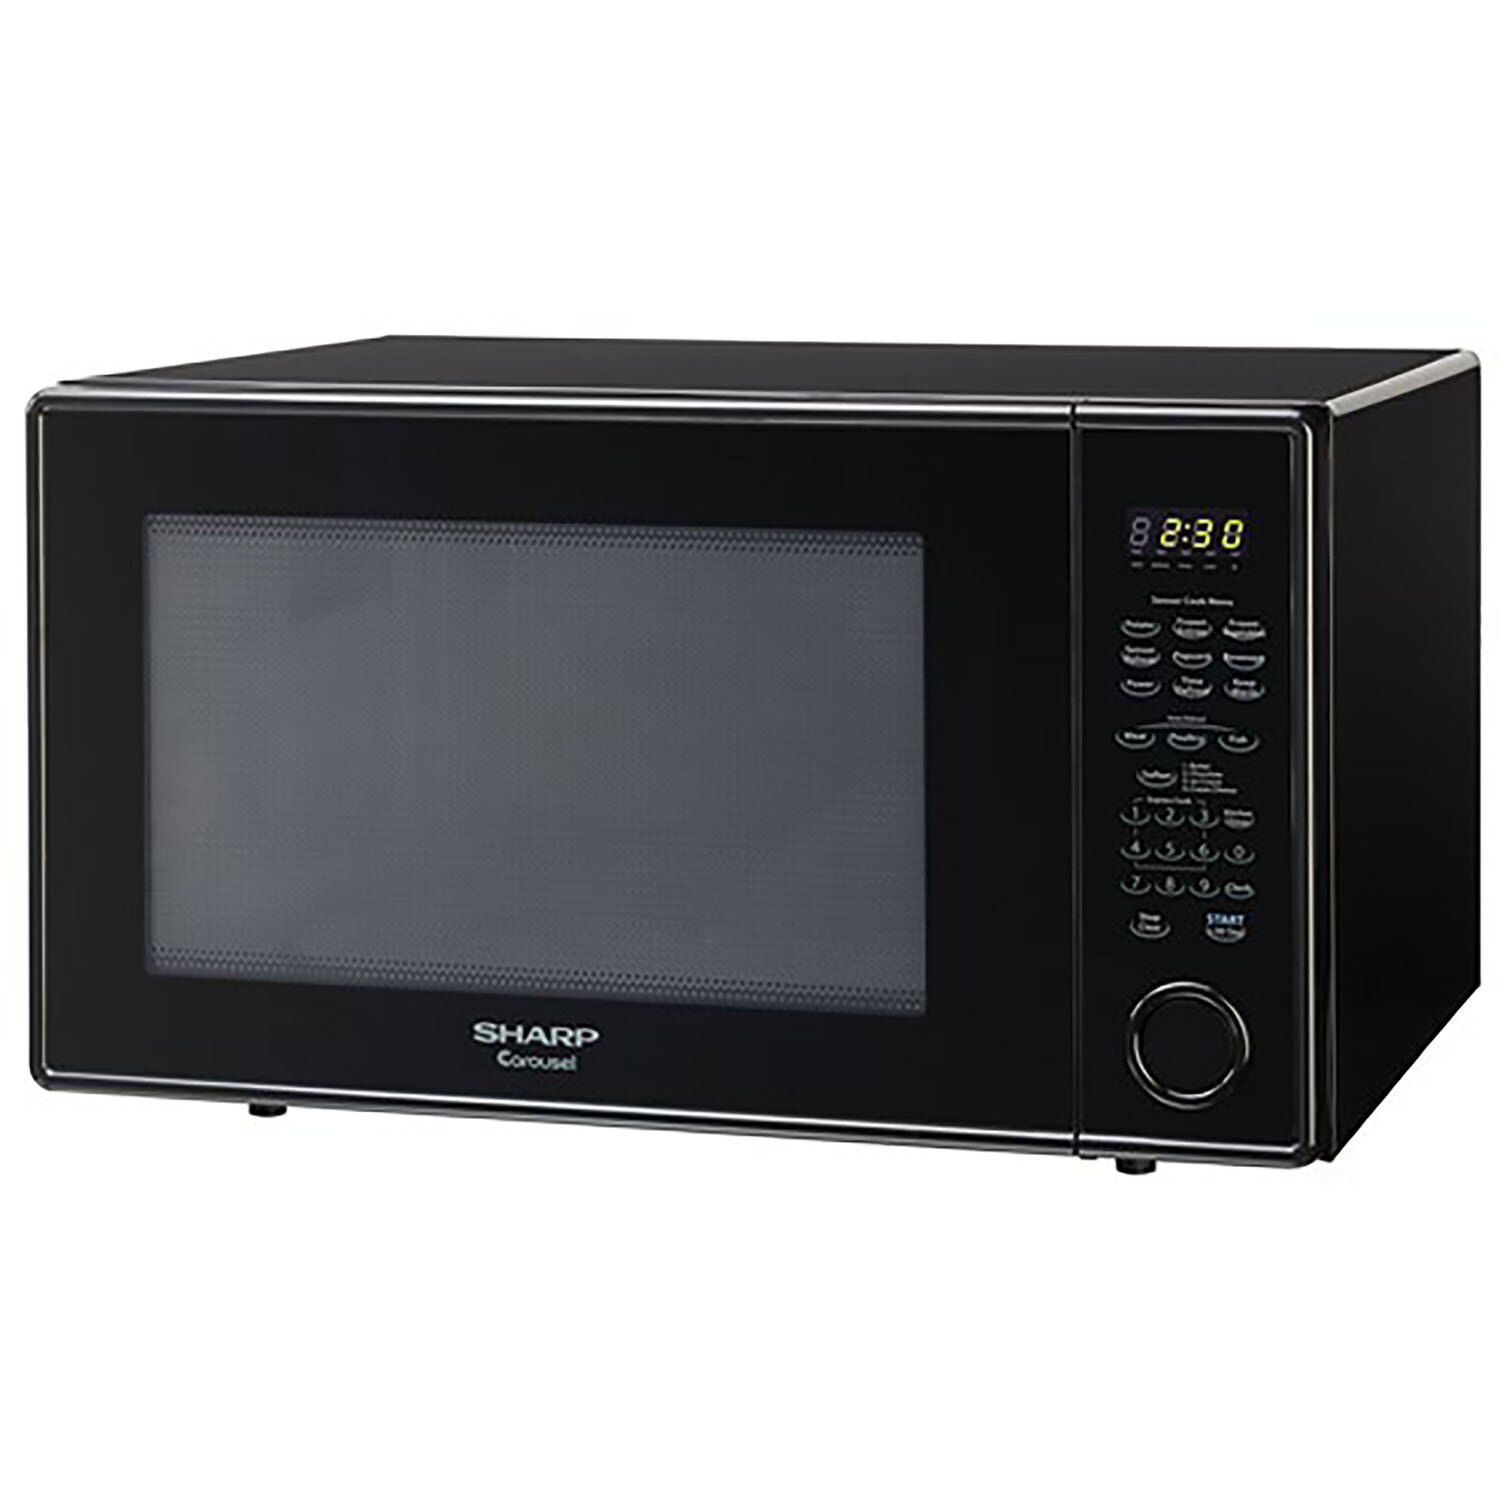 Countertop Microwave Sharp : Cu. Ft. 1200W Countertop Microwave by Sharp